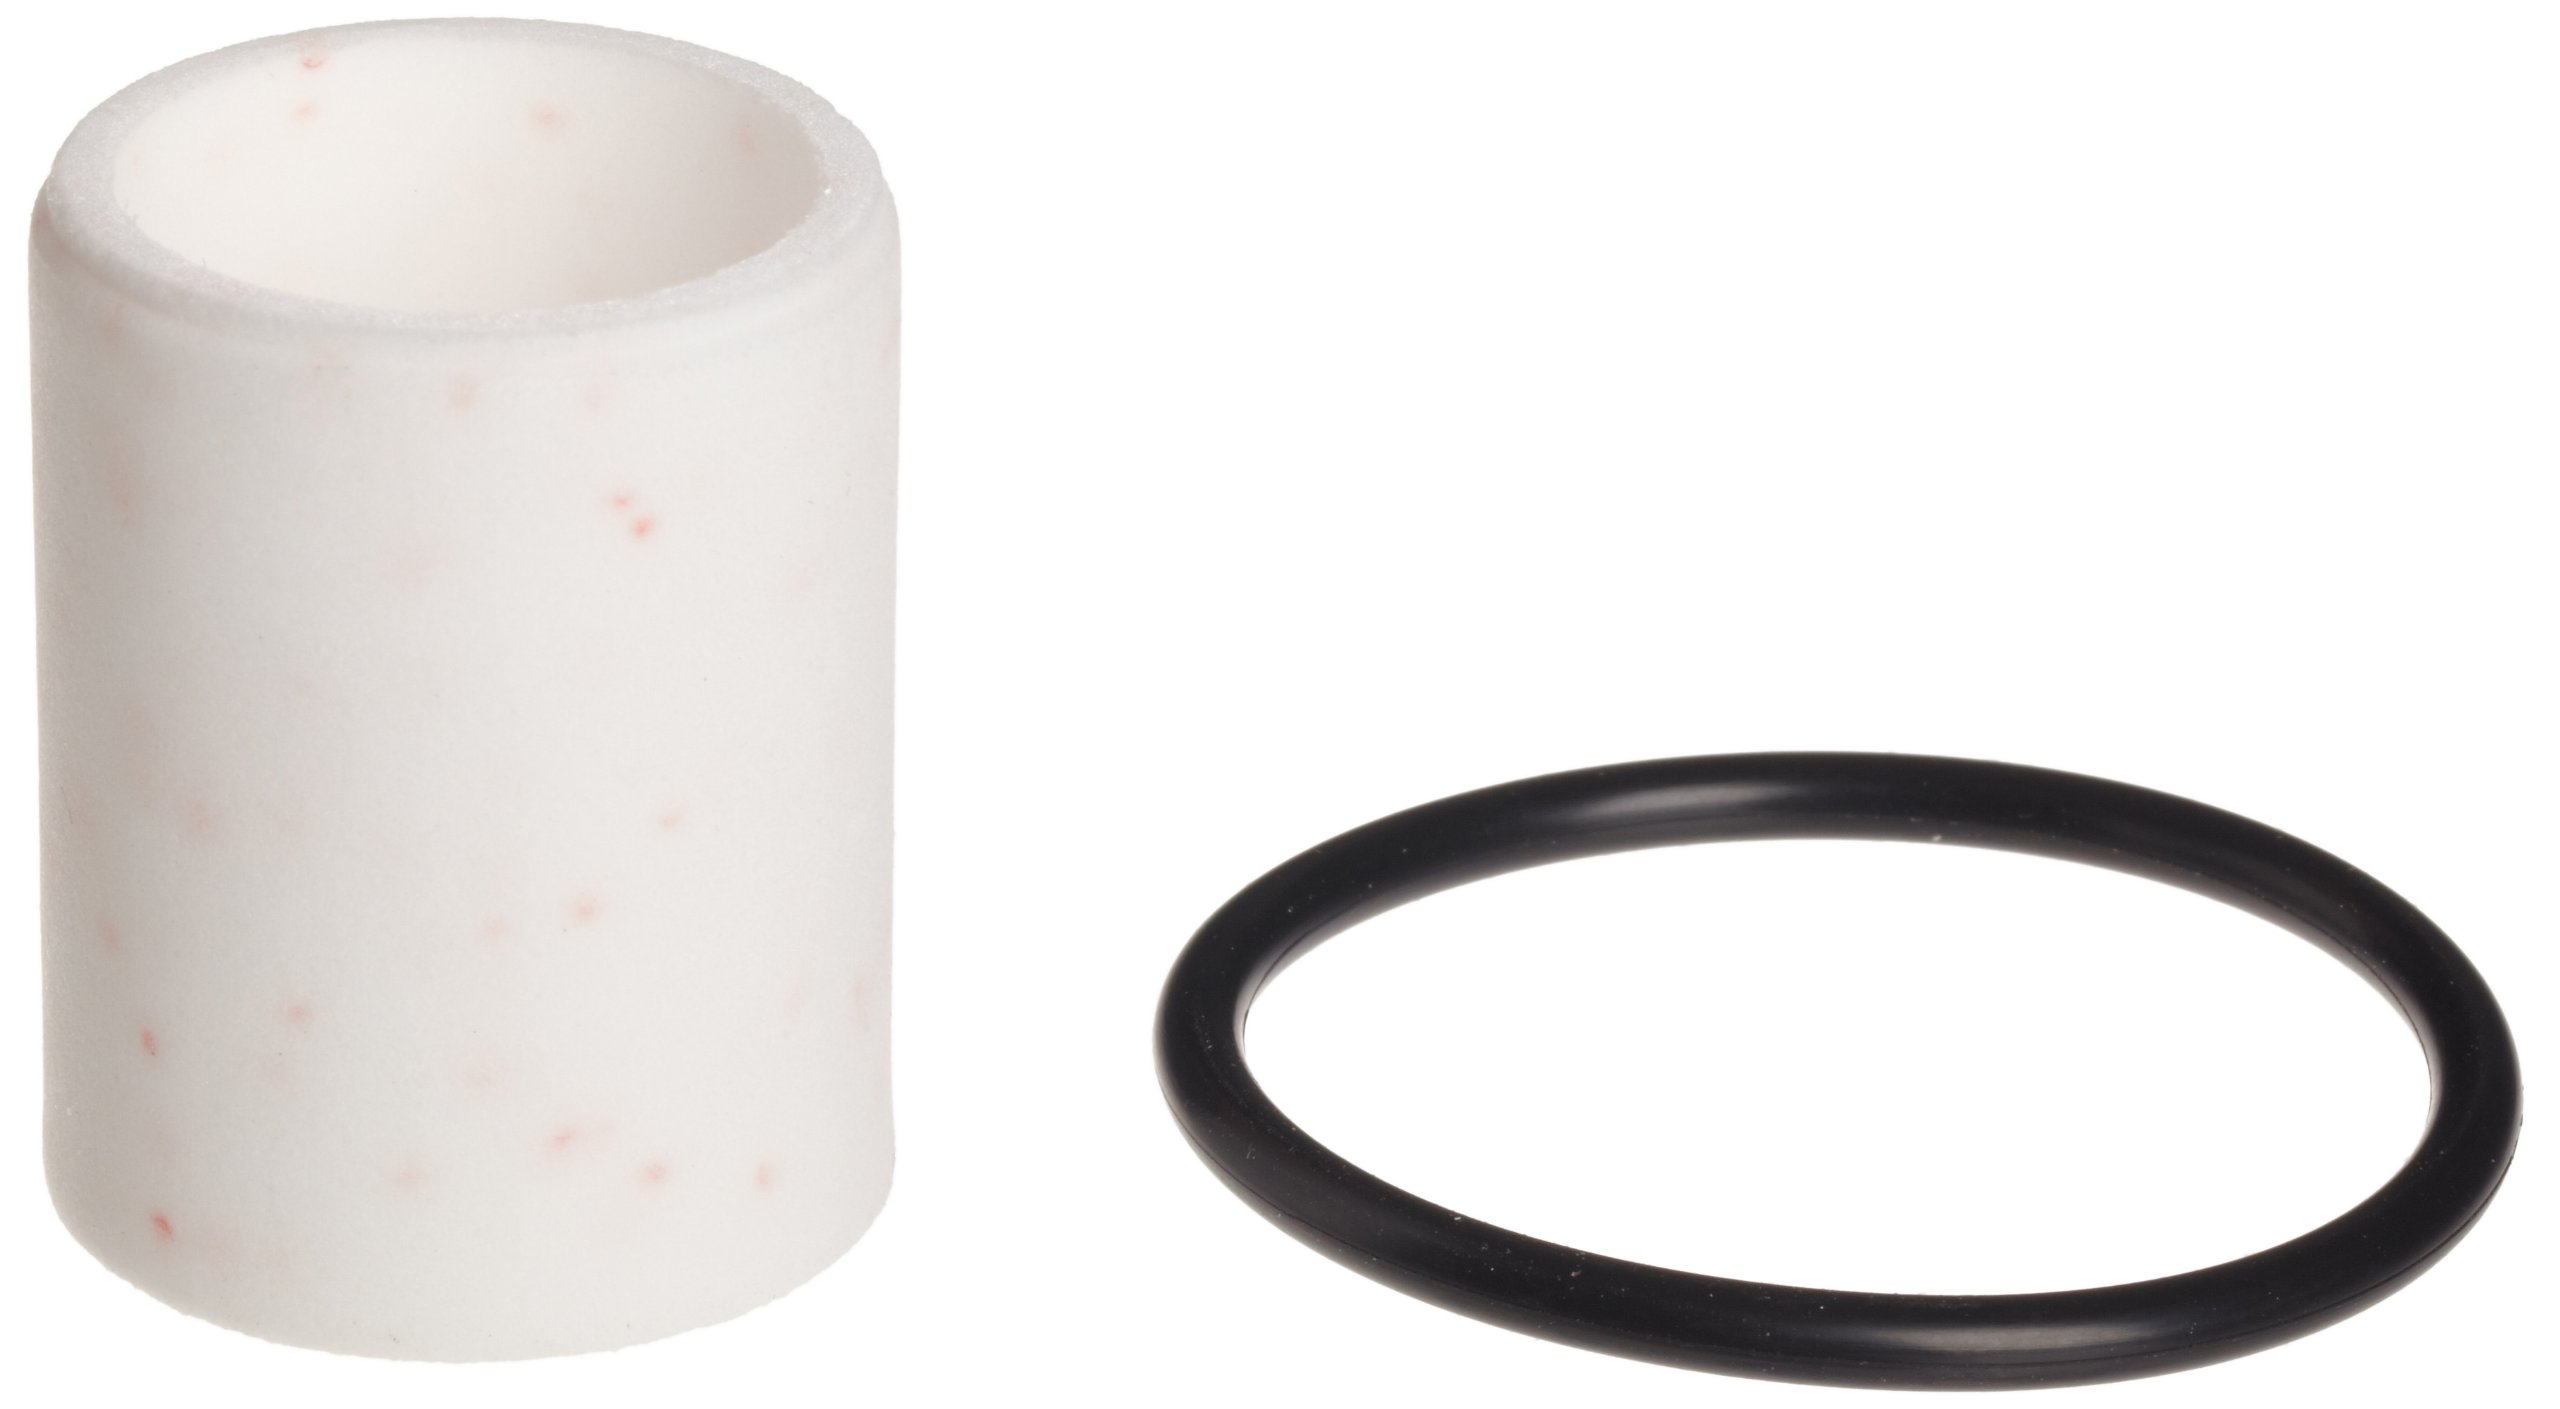 Parker PS702P Plastic Filter Element for 06F and 06E Series Filter/Regulator, 5 Micron by Parker